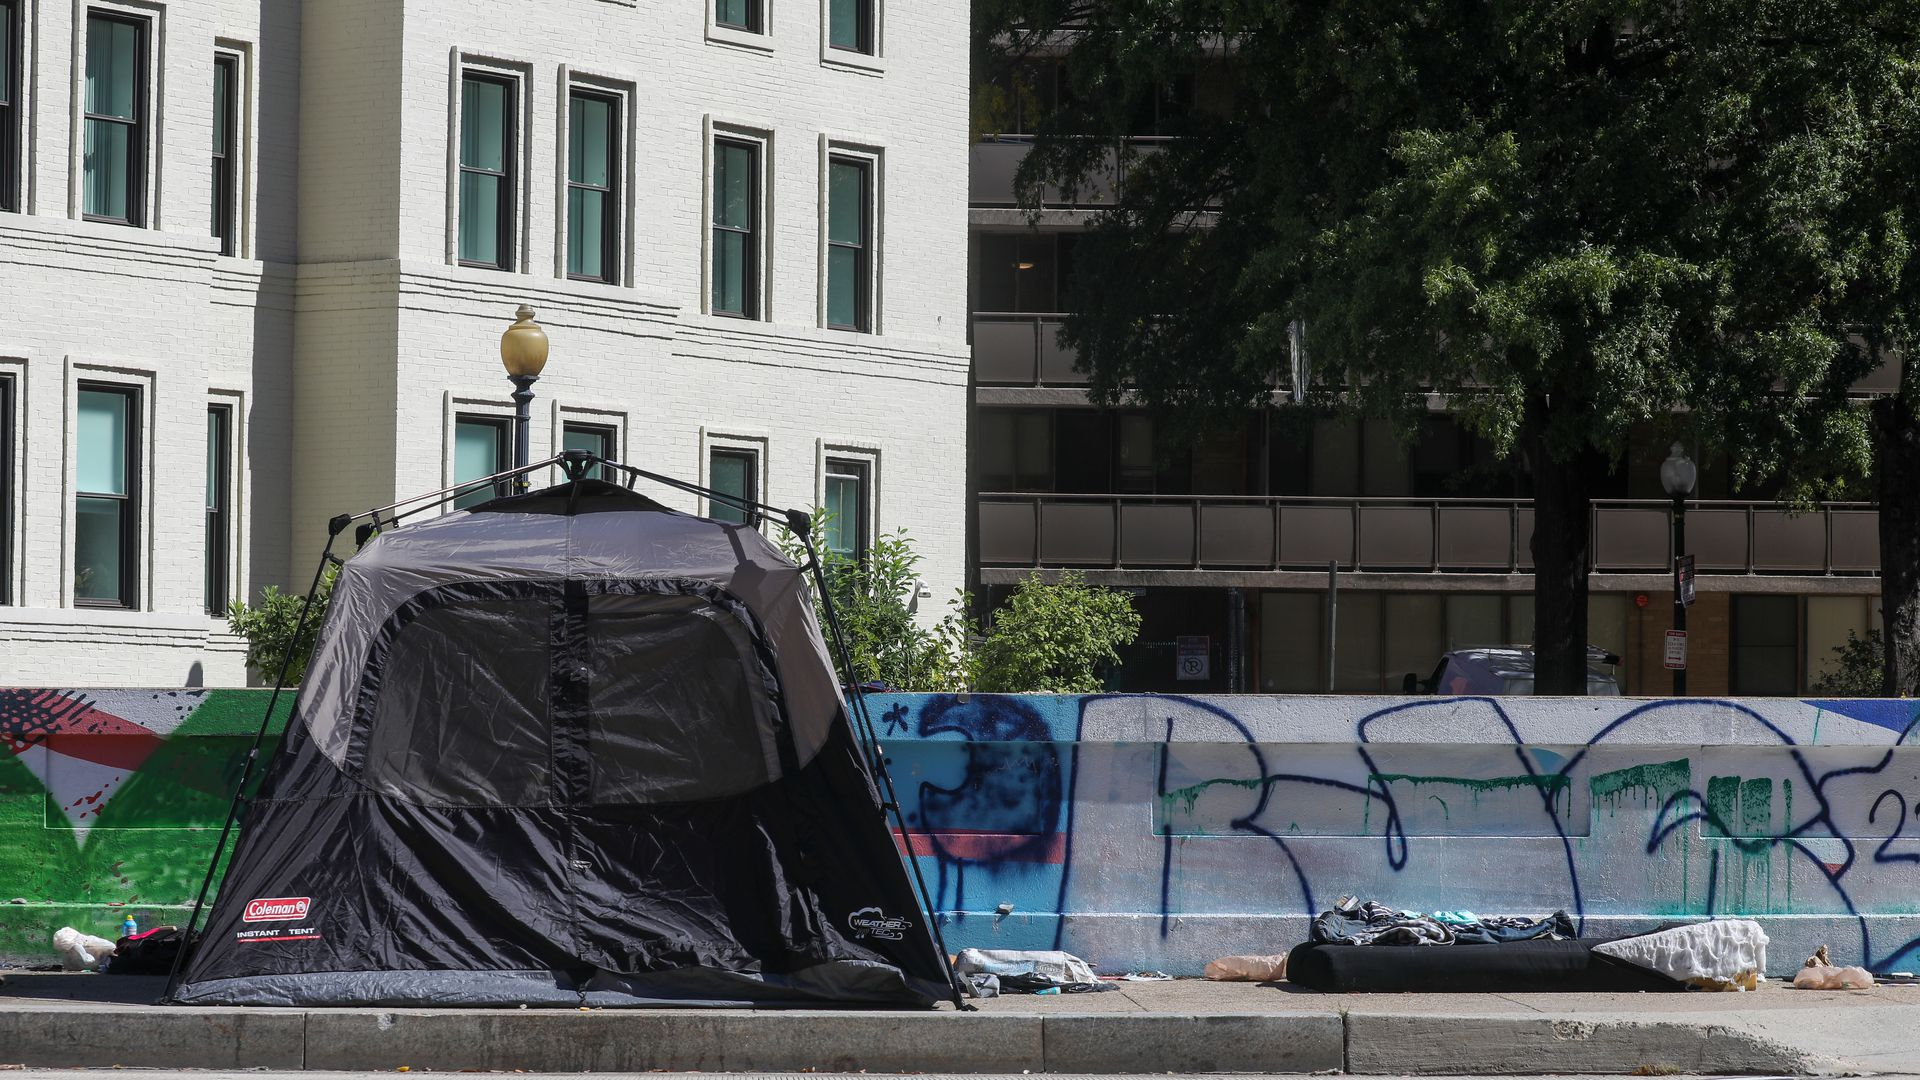 A homeless tent in D.C.